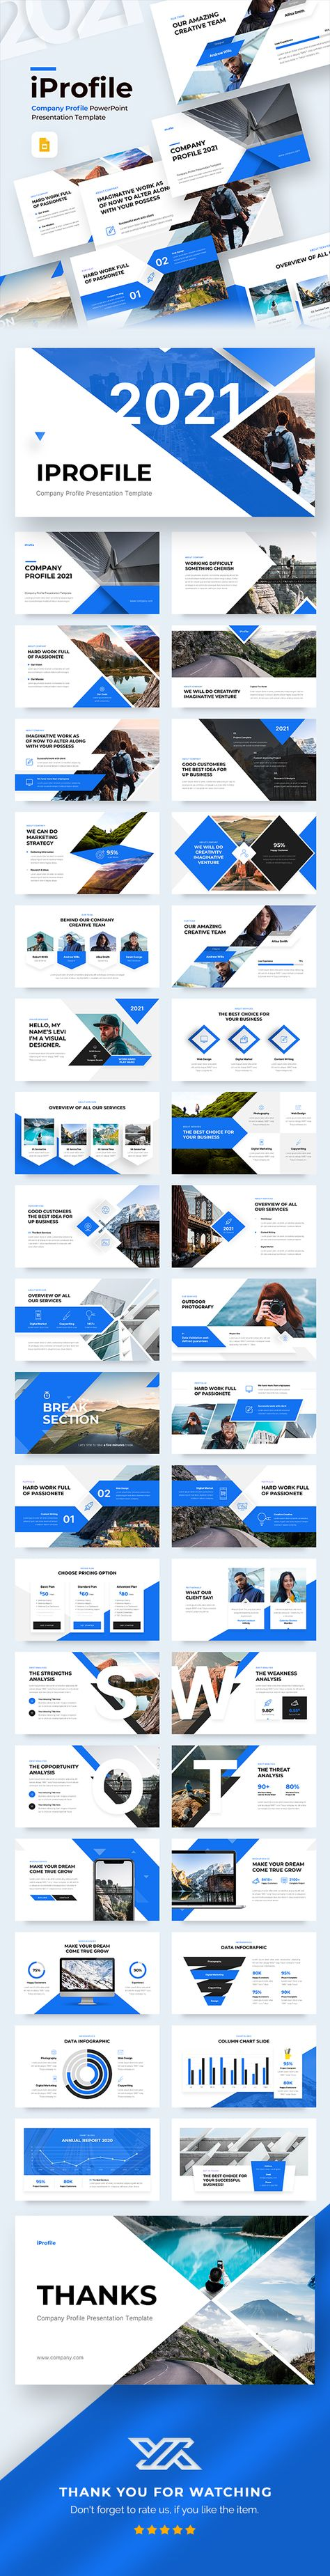 Iprofile - Company Profile Google Slides Presentation Template